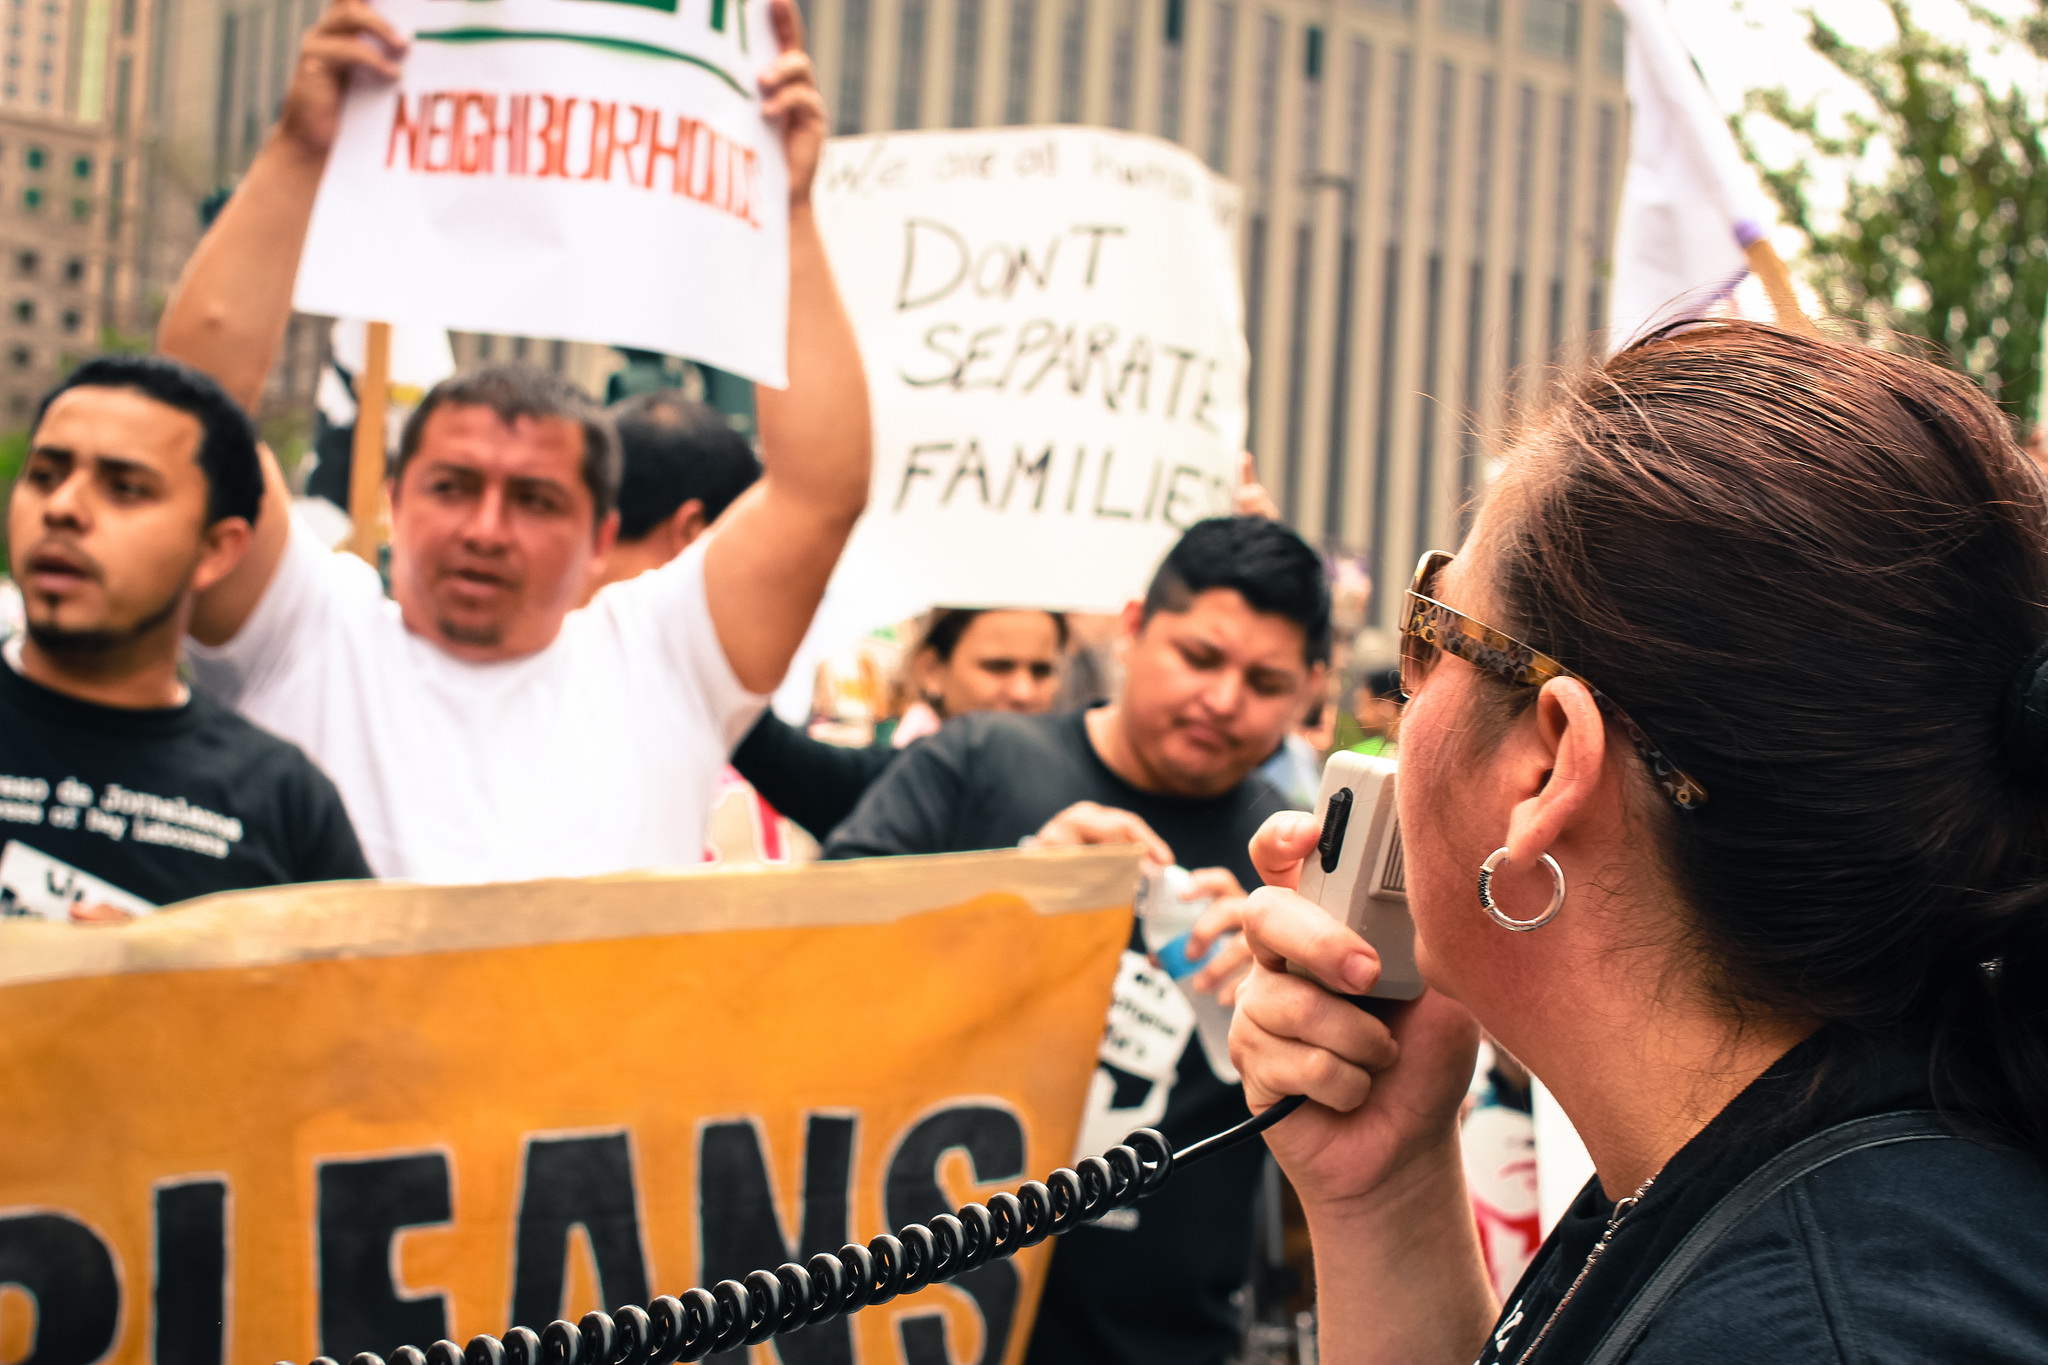 """Immigrant workers hold signs and banners while a person stands in foreground holding a microphone. One sign reads """"Don't separate families."""""""